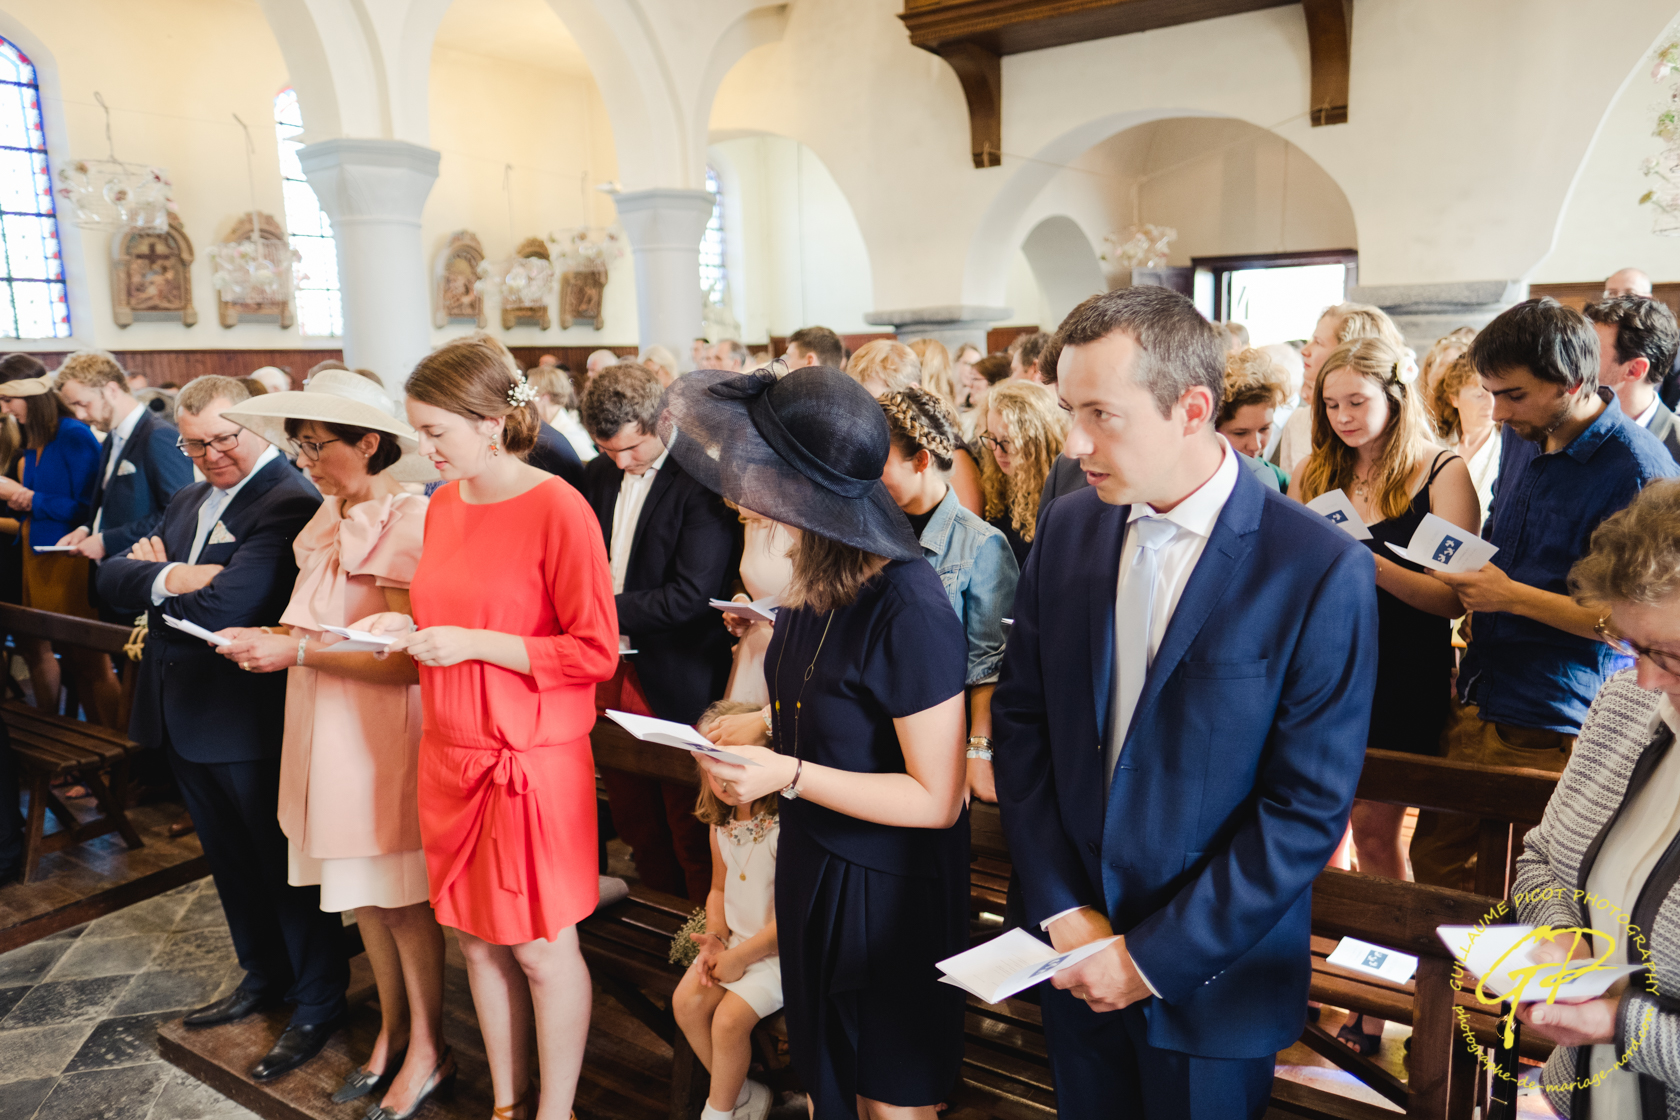 mariage-claire-fontaine-wicres-47-sur-151